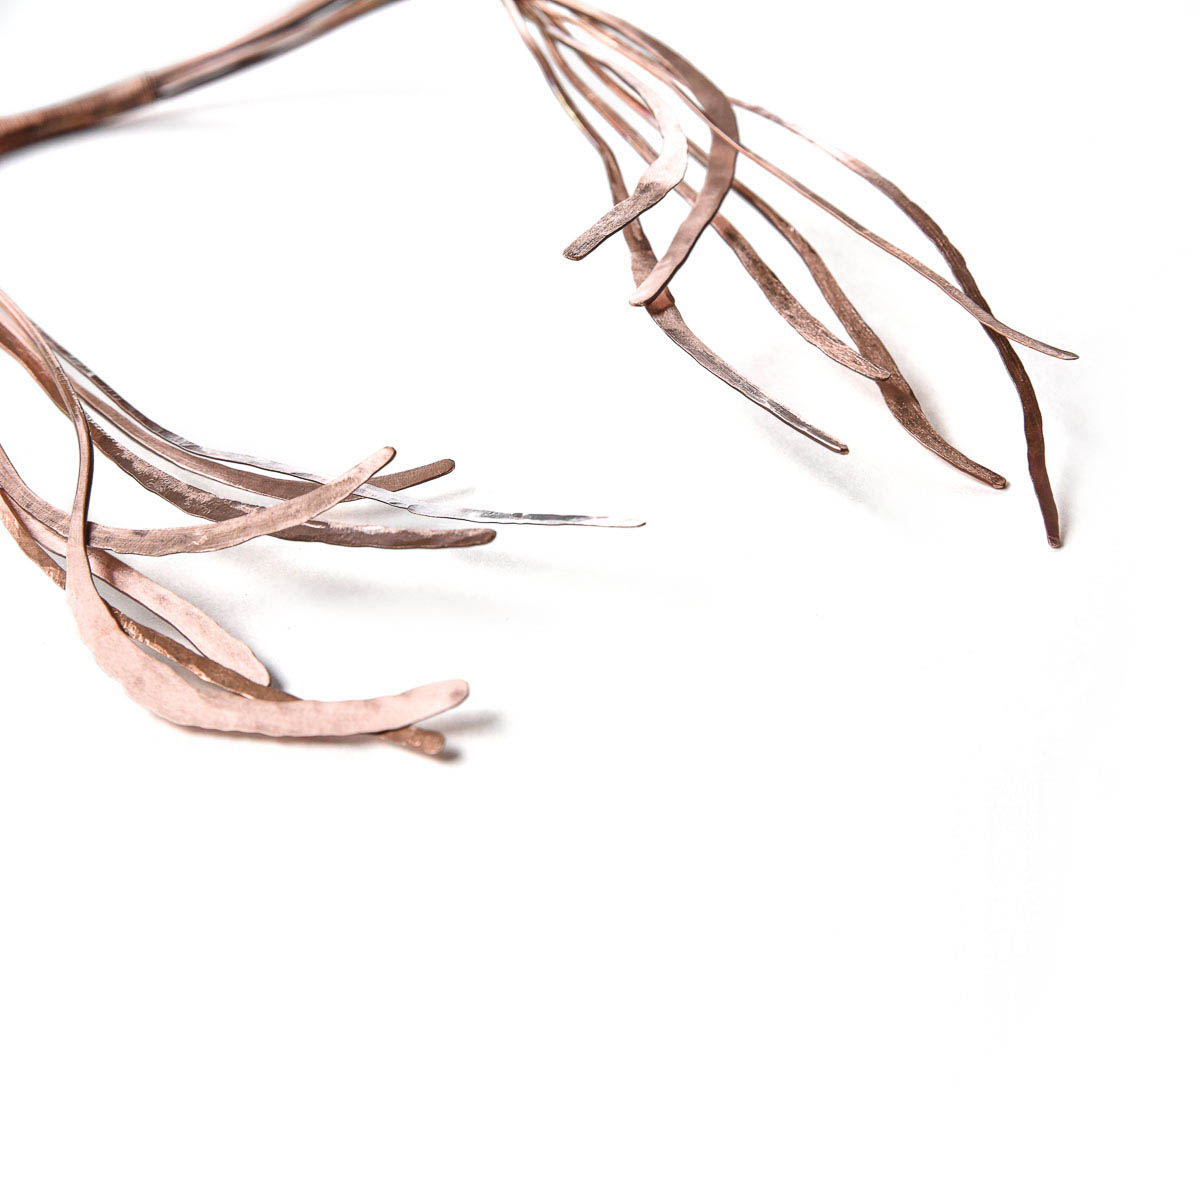 The Seaweed Collection is part of the Experimental jewelry works. These jewelry pieces are made from hammered copper wires to show the movement of seaweed.